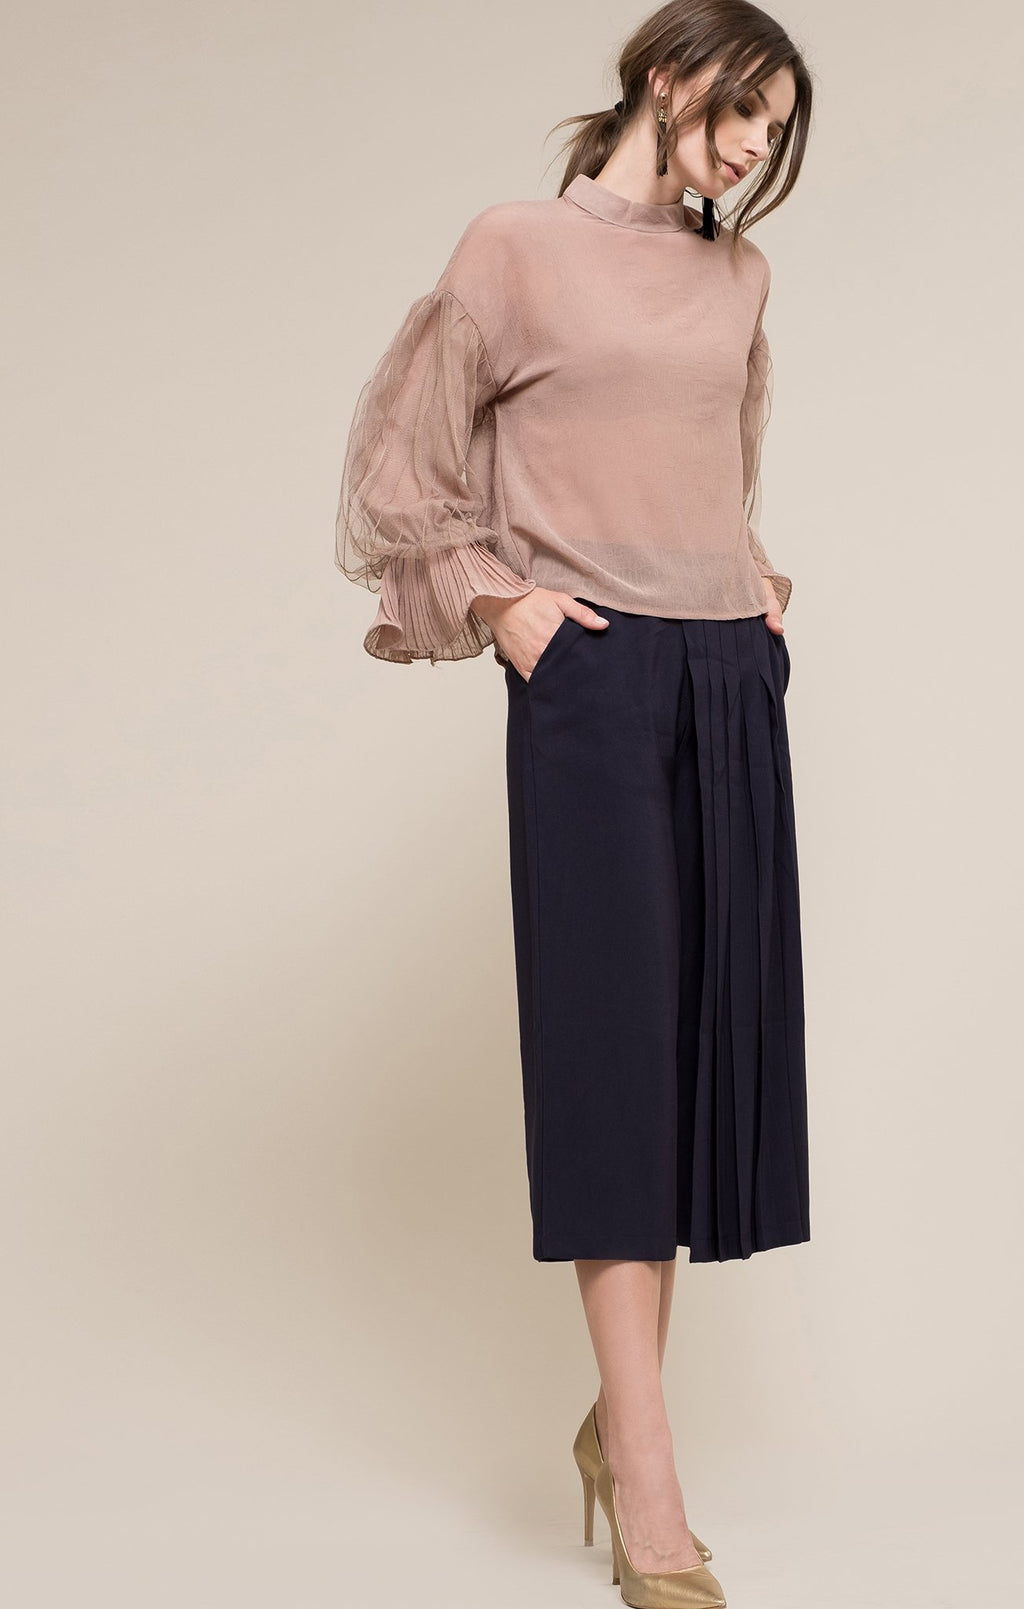 Moon River:Women - Apparel - Shirts - Blouses:Marize Puff Sleeve Top:XS